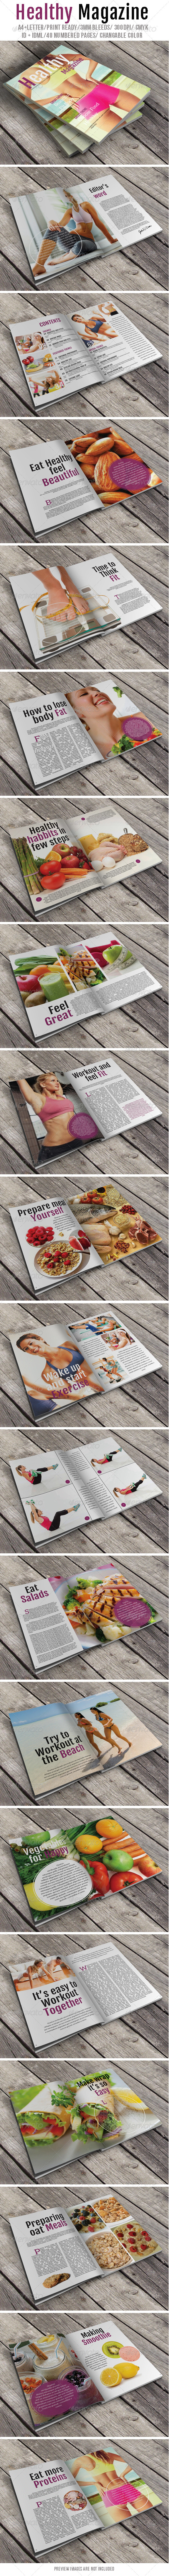 GraphicRiver Healthy Magazine 7227659